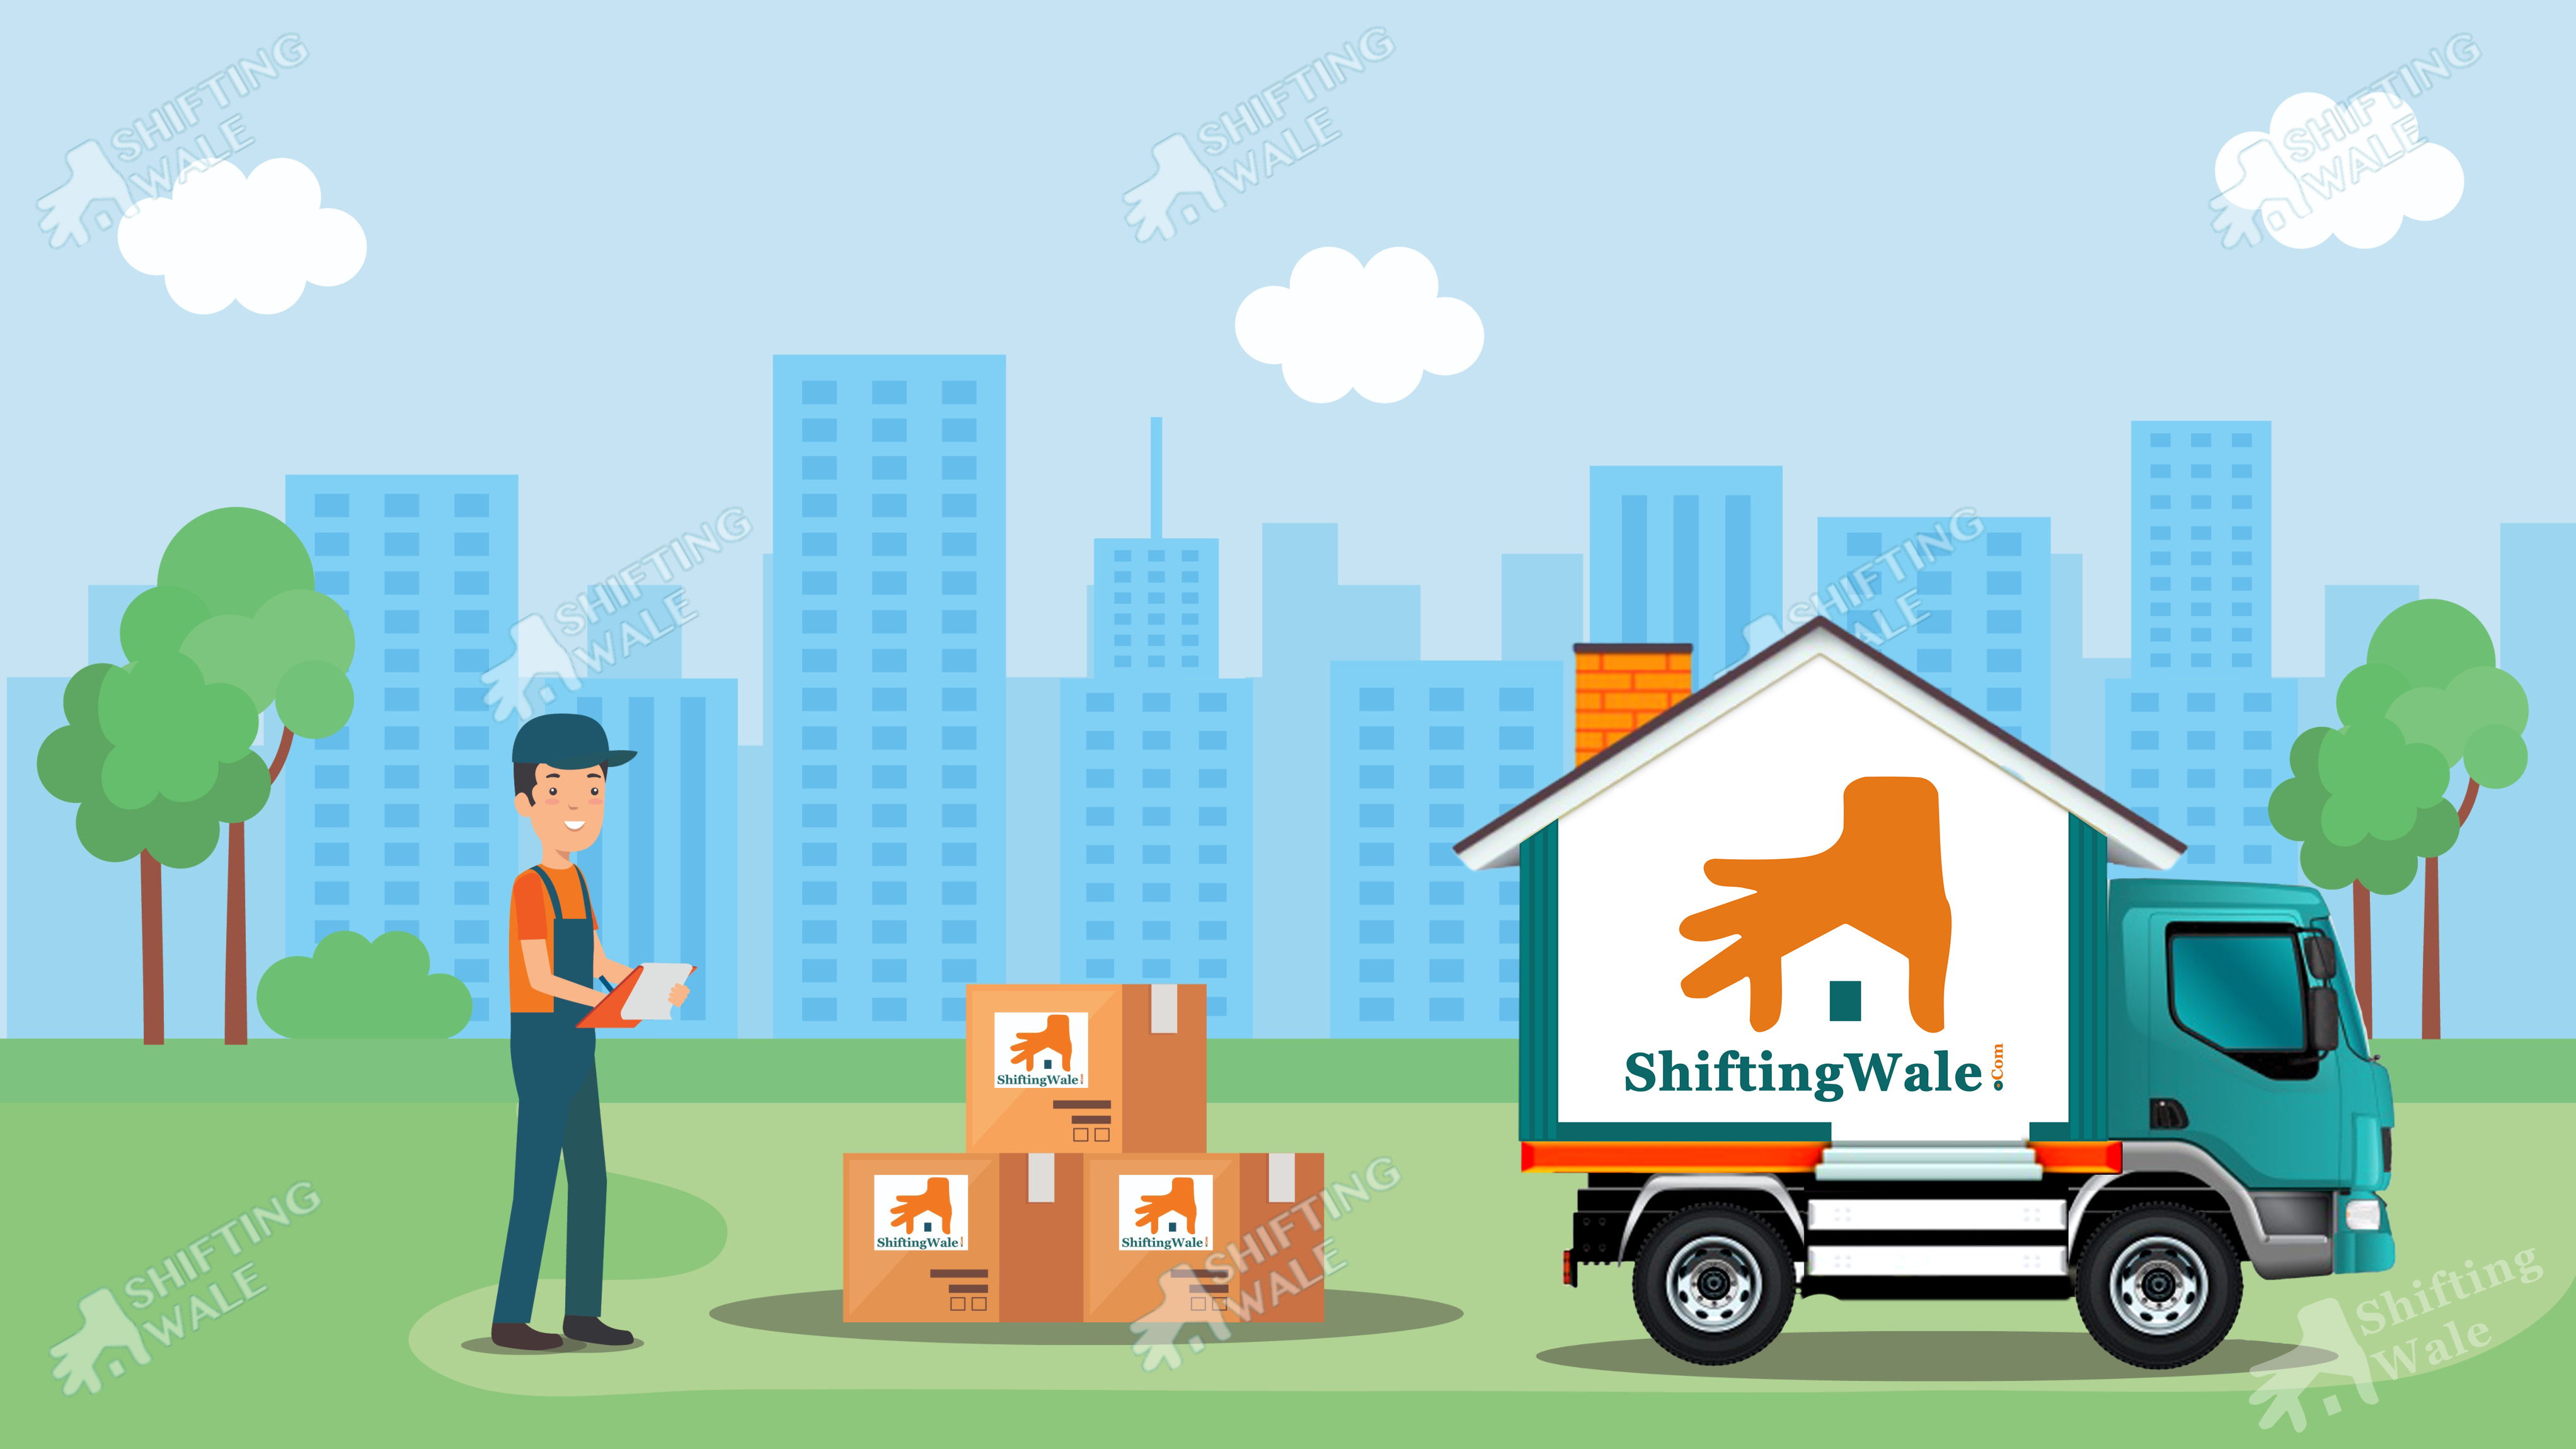 Want Packers and Movers for Household Goods Car From Delhi Ghaziabad Gurugram Noida to Patna Ranchi Jamshedpur Bokaro